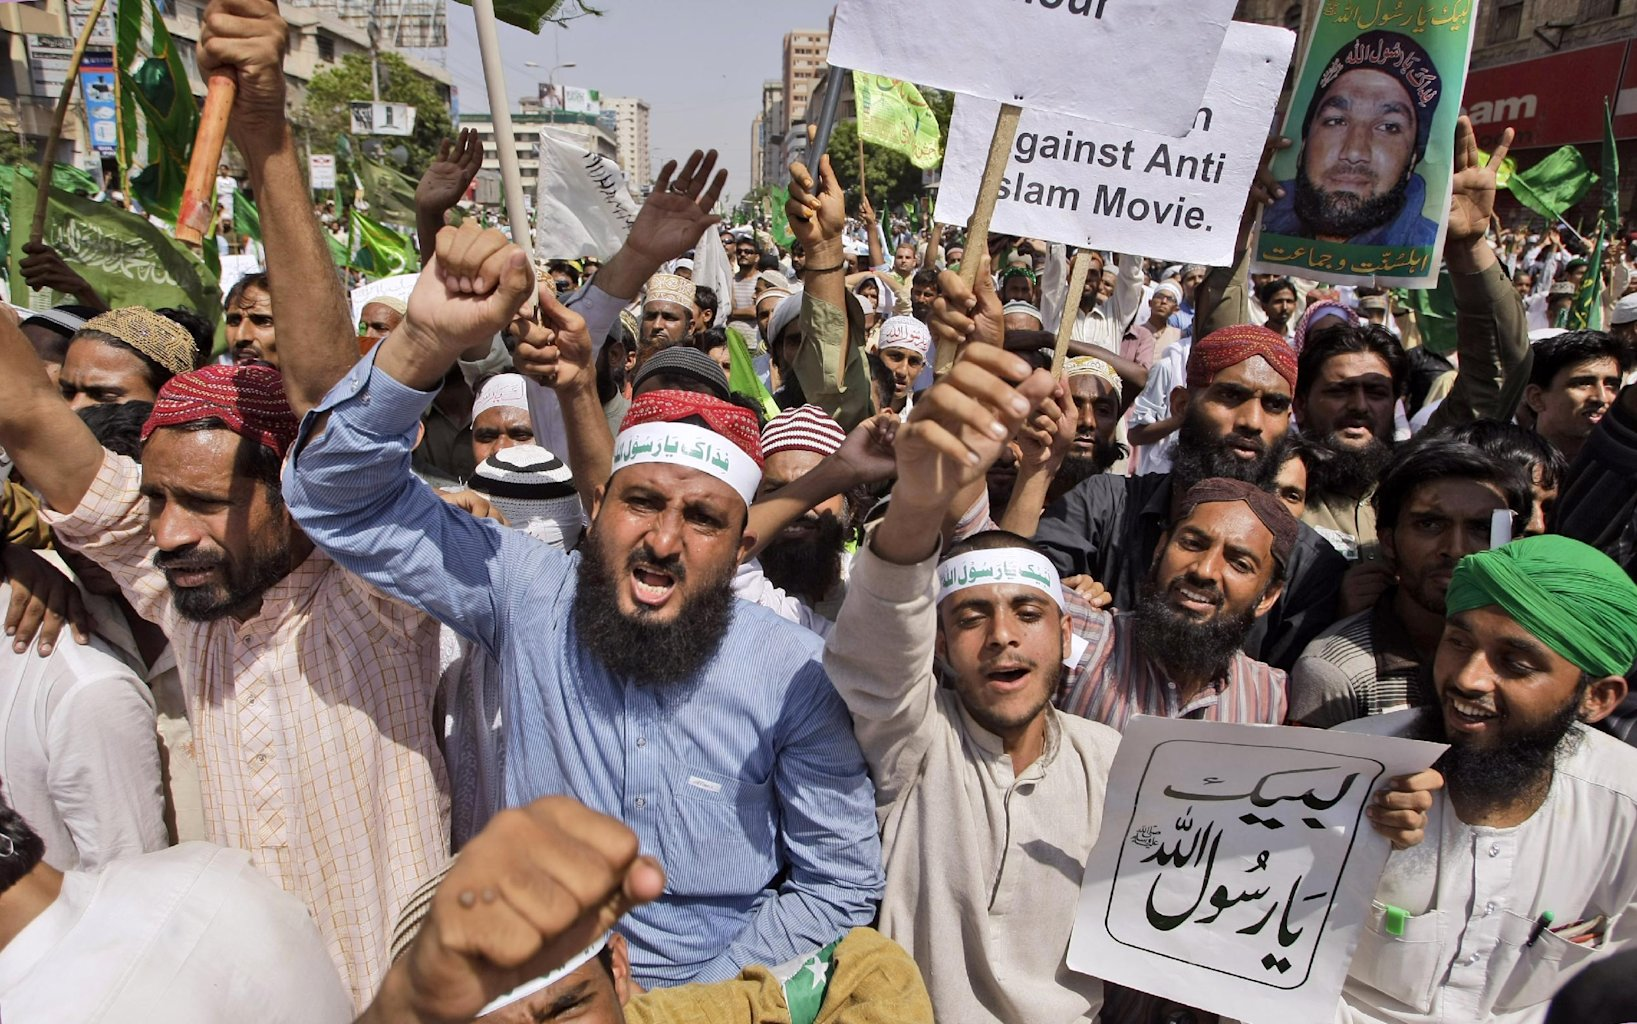 Pakistan: In Twist, Muslims Accused Of Blasphemy [AP]